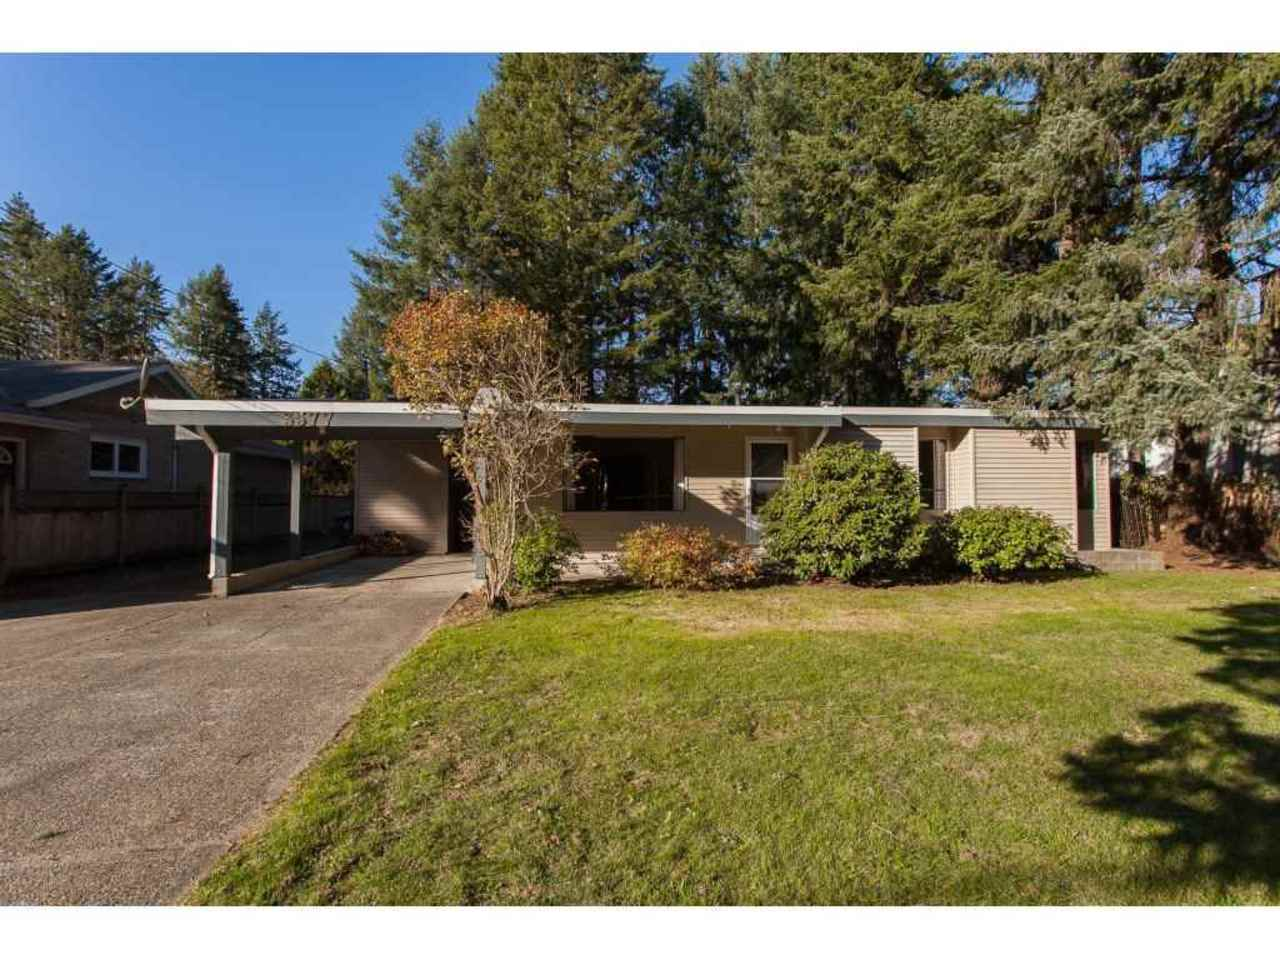 3577 198a Street, Brookswood Brookswood, Langley